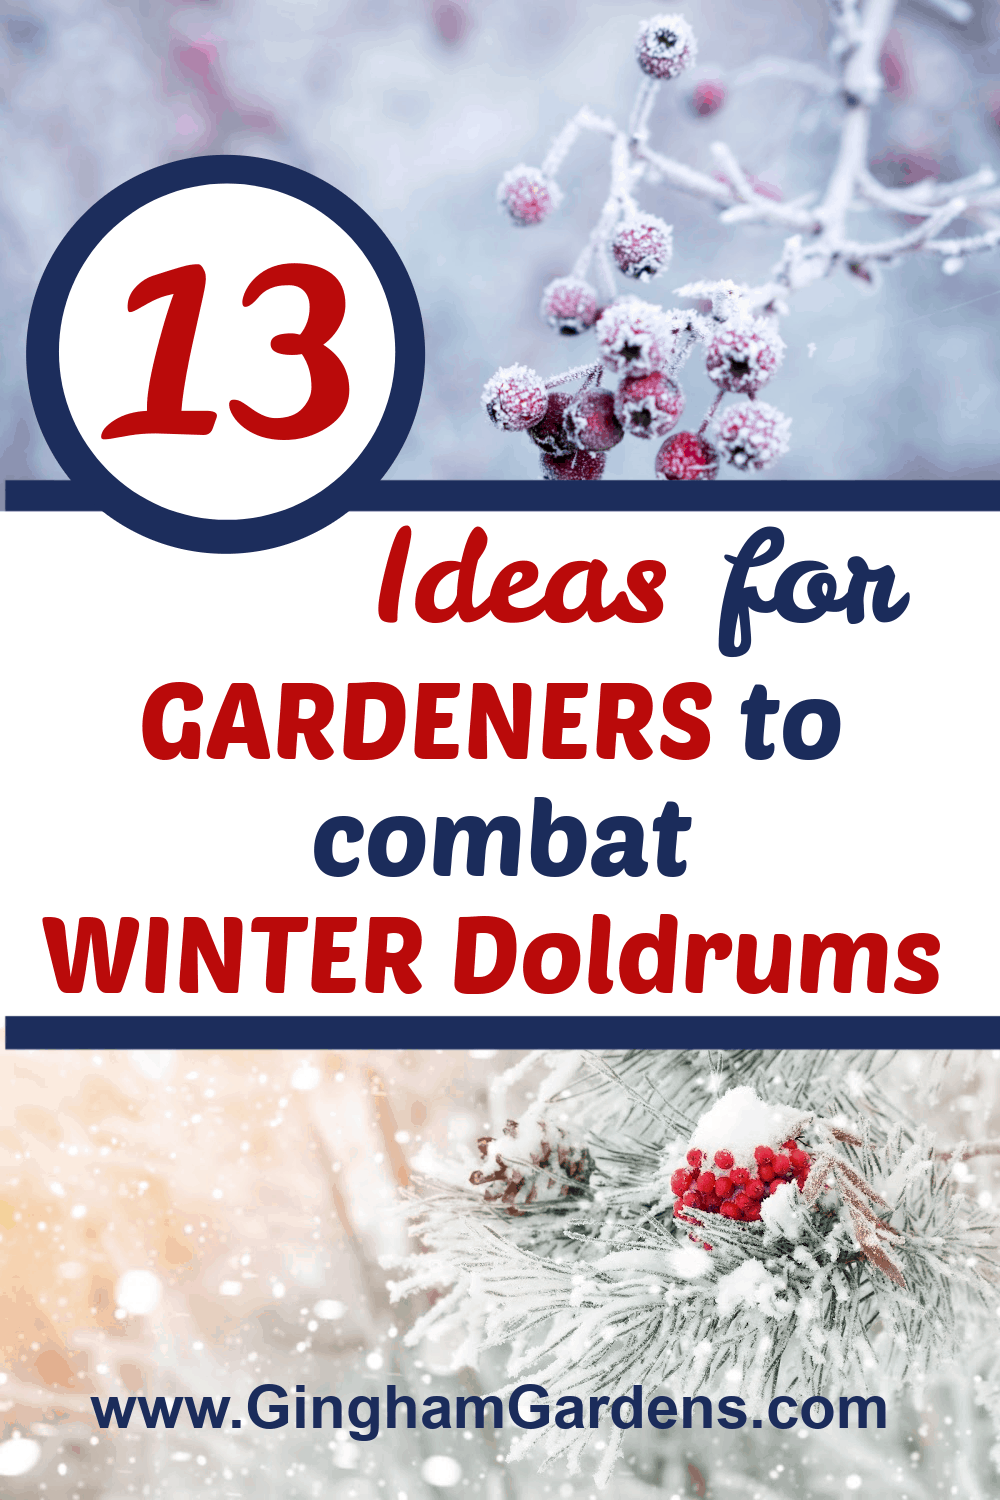 Winter Outdoor Images with Text Overlay - 13 Ideas for Gardeners to combat Winter Doldrums